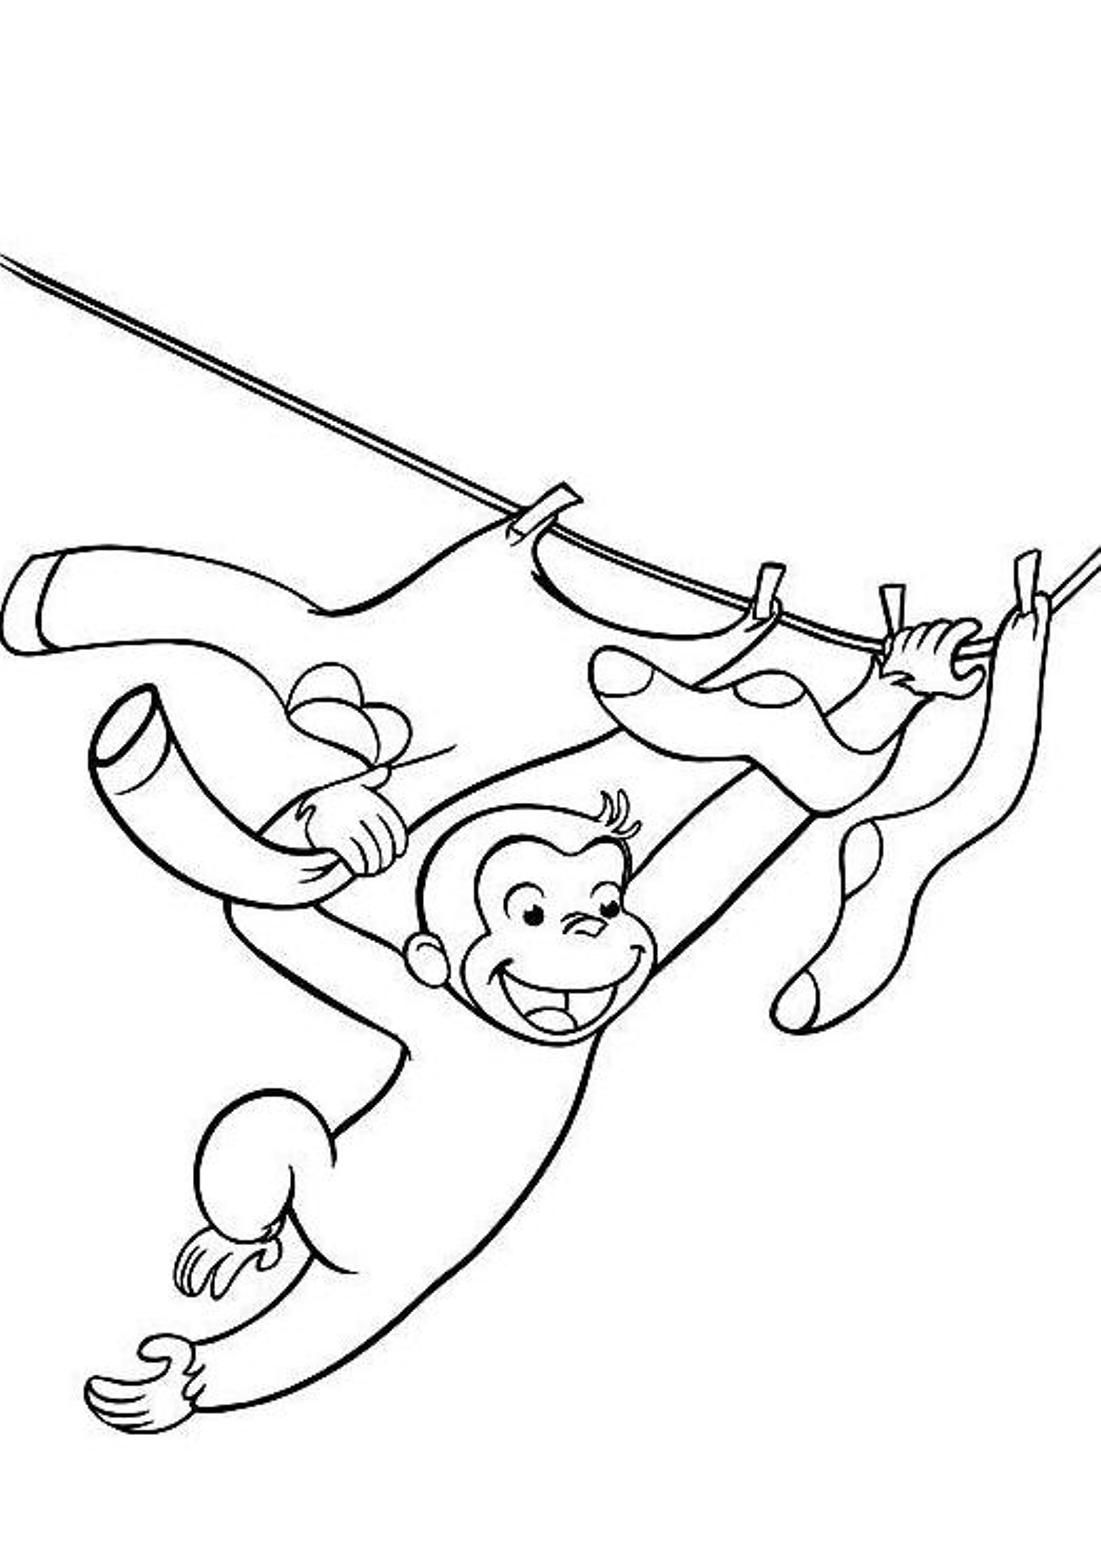 curious coloring pages - photo#16